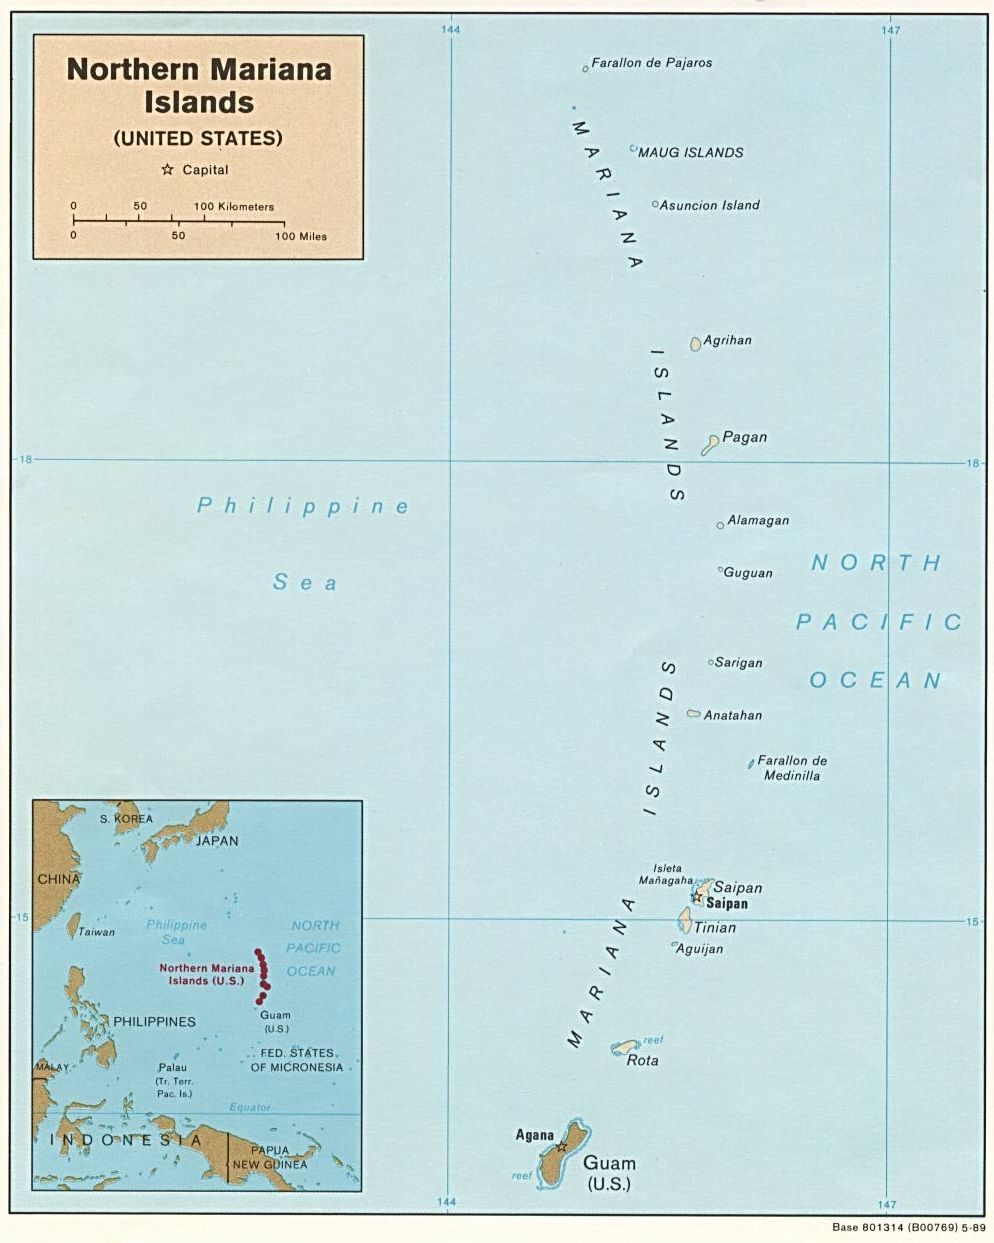 Map of the Commonwealth of the Northern Mariana Islands (Political), 1989. Courtesy of, The World Factbook (http://cia.gov/cia/publications/factbook) or CIA Maps and Publications Released to the Public (http://www.cia.gov/cia/publications/mapspub), Central Intelligence Agency (CIA), Government of the United States of America (USA); and the Perry-Castañeda Map Collection (http://www.lib.utexas.edu/maps), Perry-Castañeda Library, The General Libraries, University of Texas at Austin, Austin, Texas, USA.